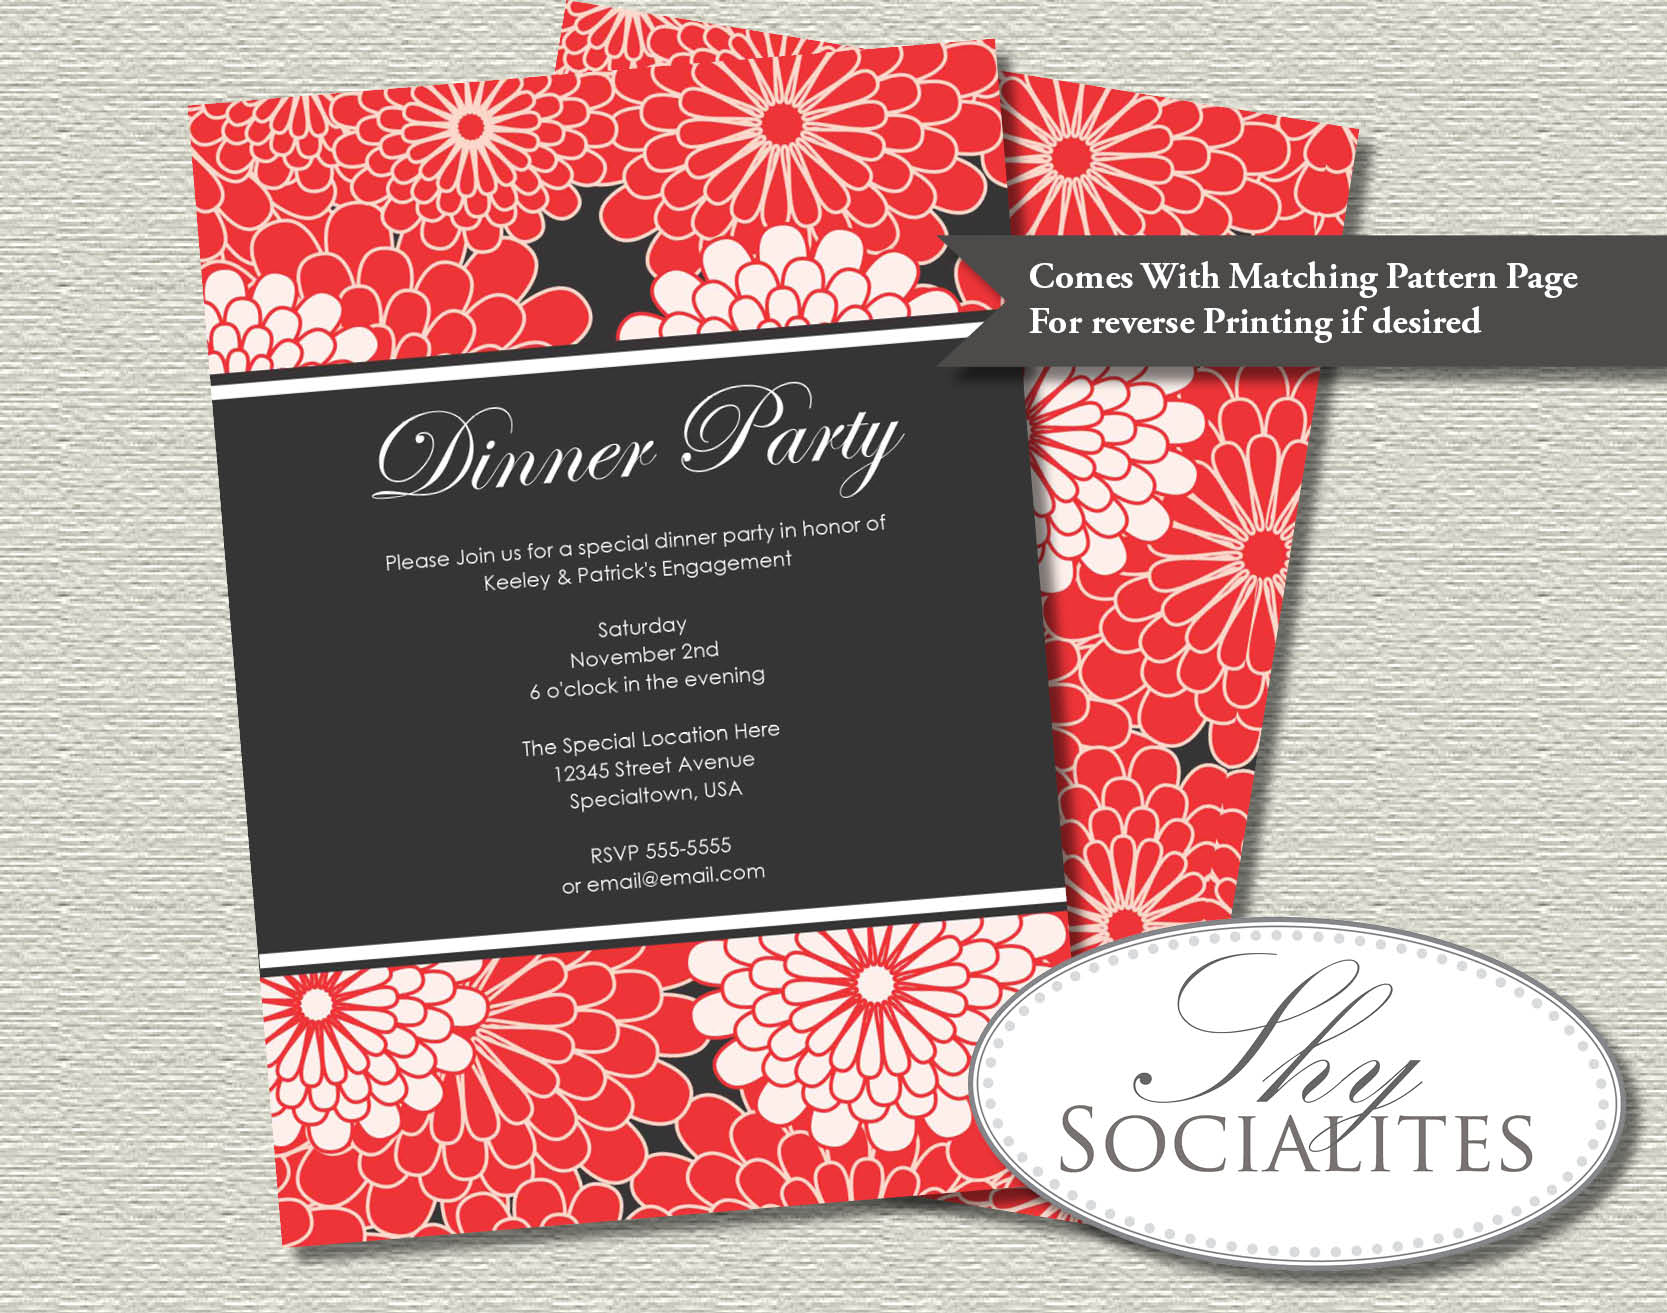 Red & Black Dahlia Floral Invitation — Shy Socialites